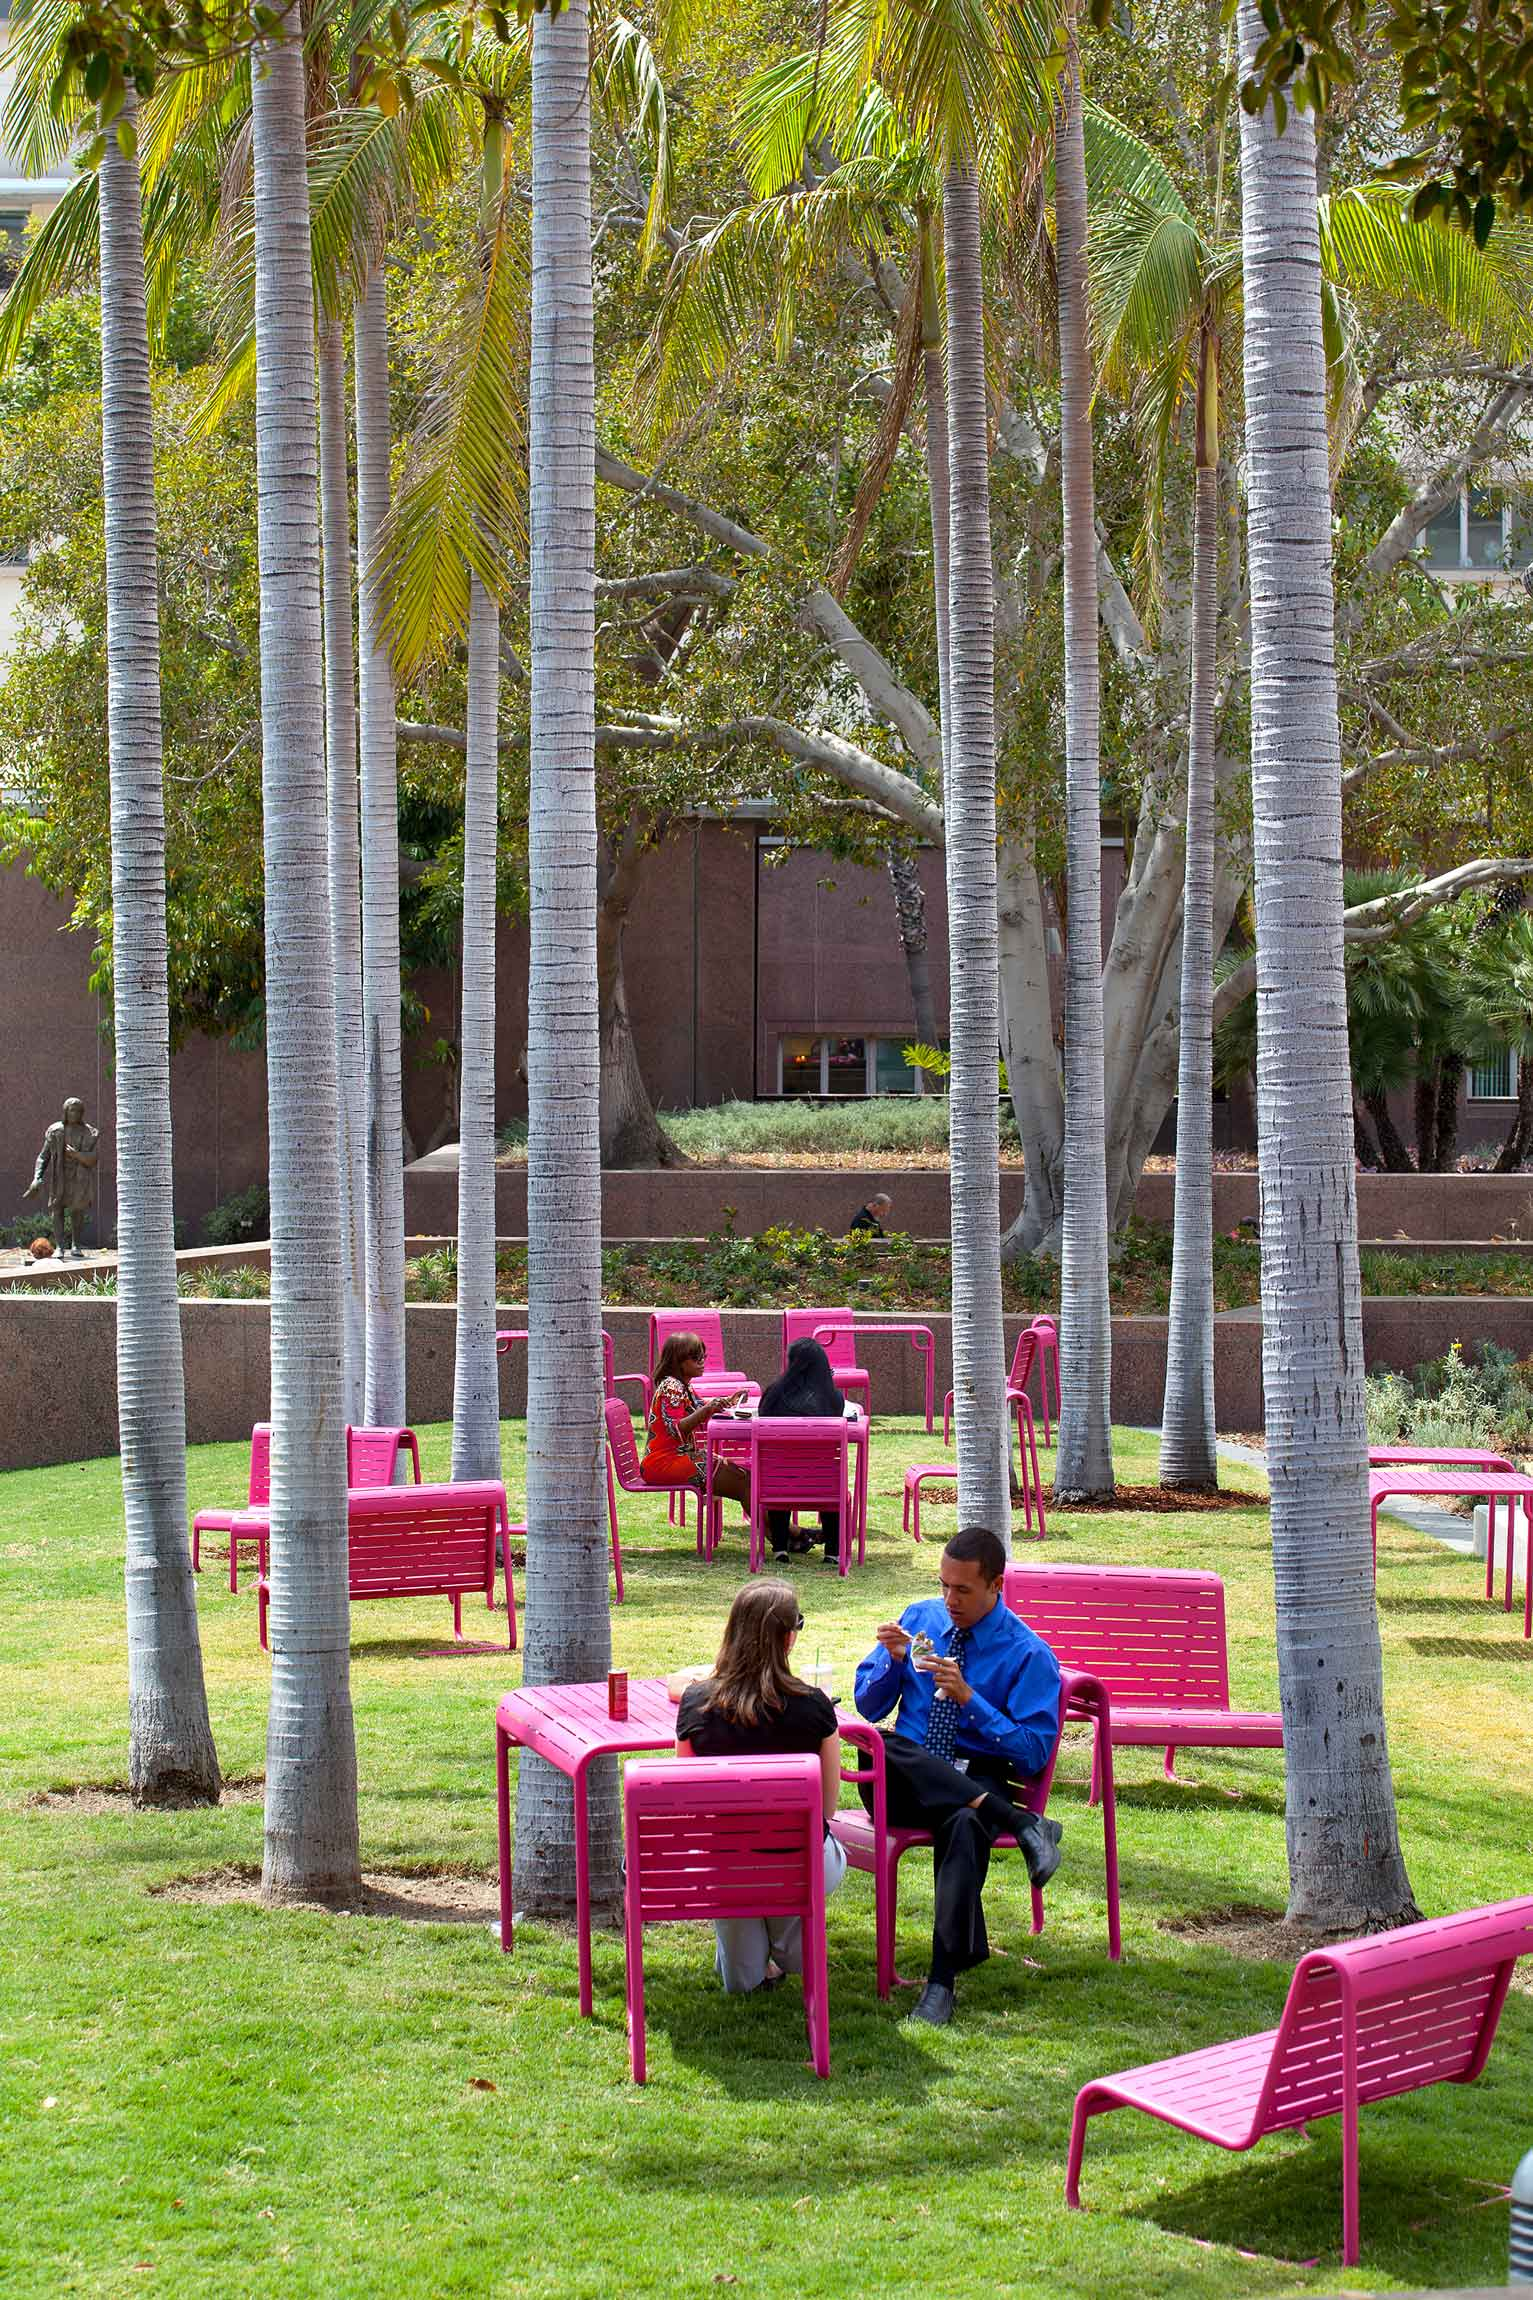 people eating at a pink table set on a grassy lawn under a tree